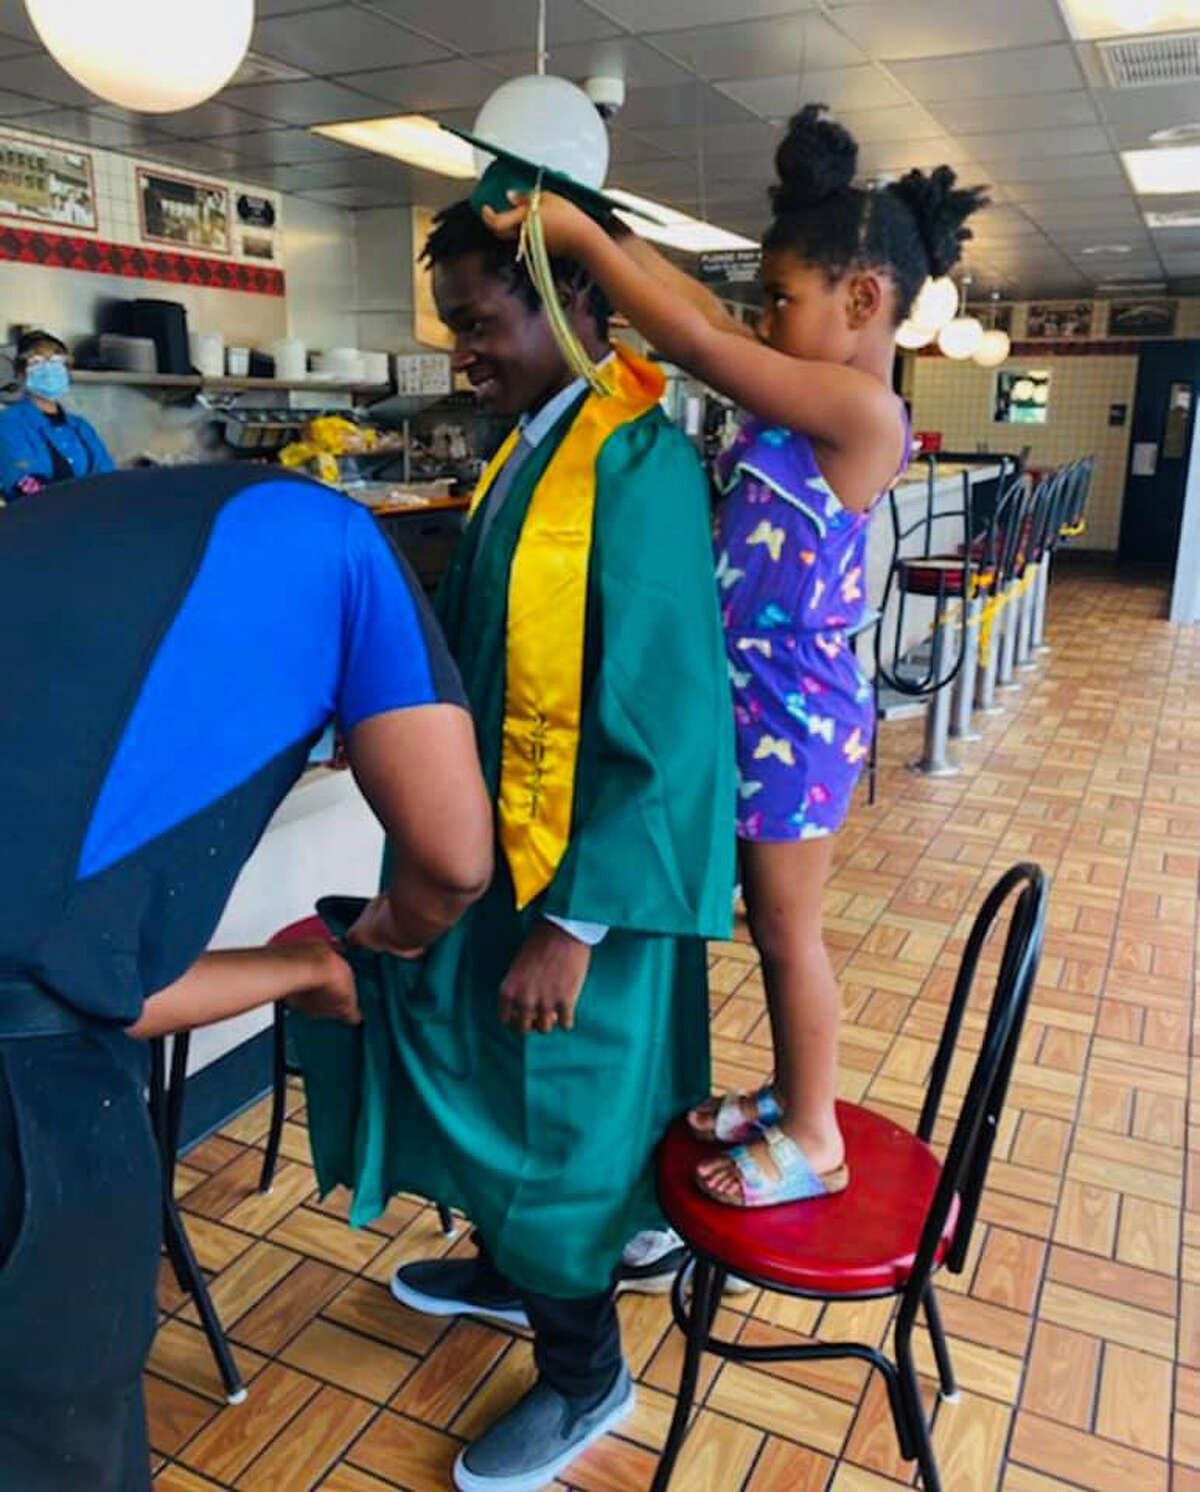 Daleena, 5, a Waffle House employee's daughter, places a graduation cap on Harrison.